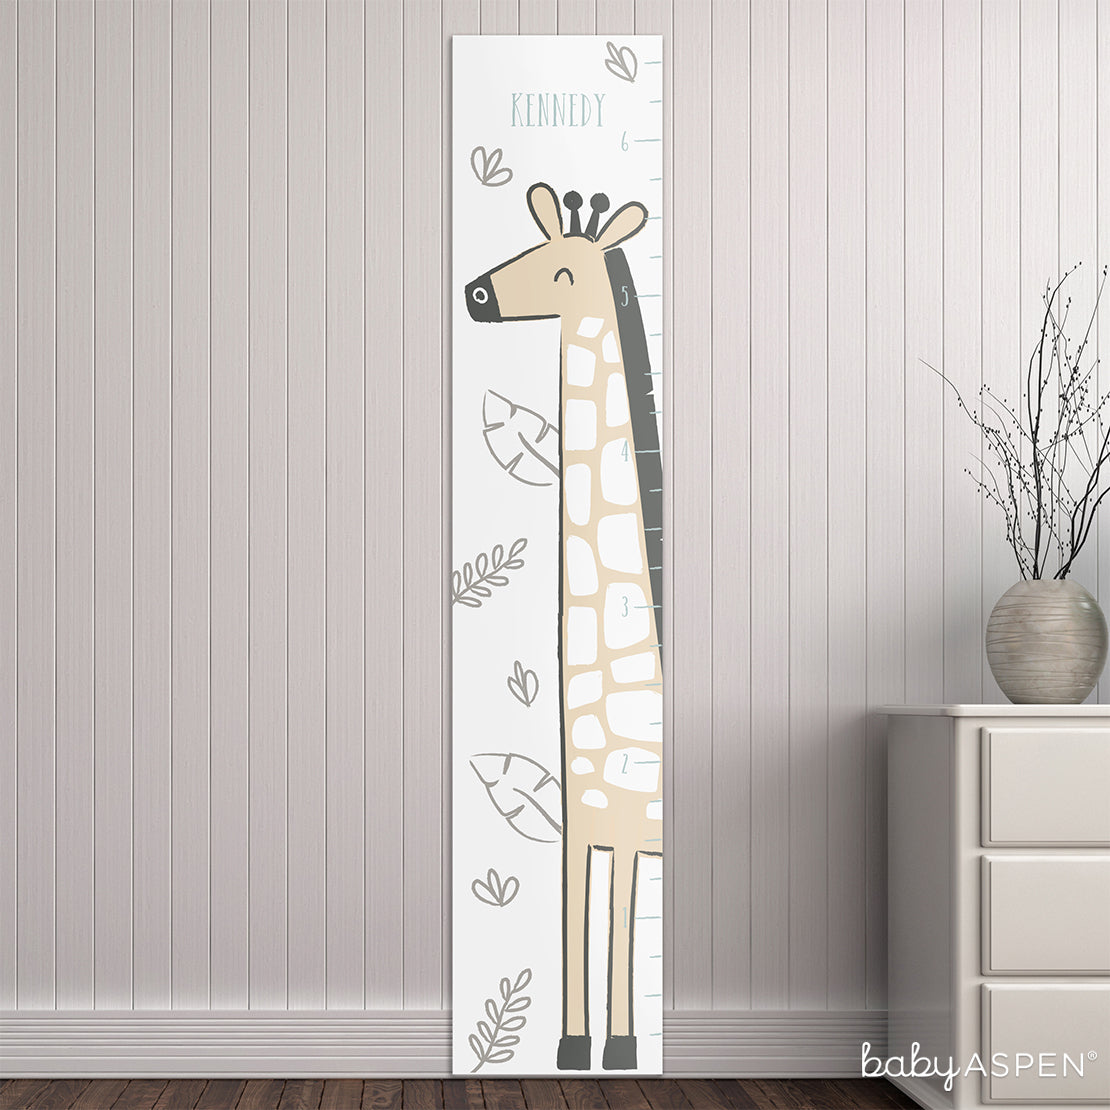 Personalized Safari Giraffe Growth Chart | Loveable Growth Charts for Your Little One | Baby Aspen